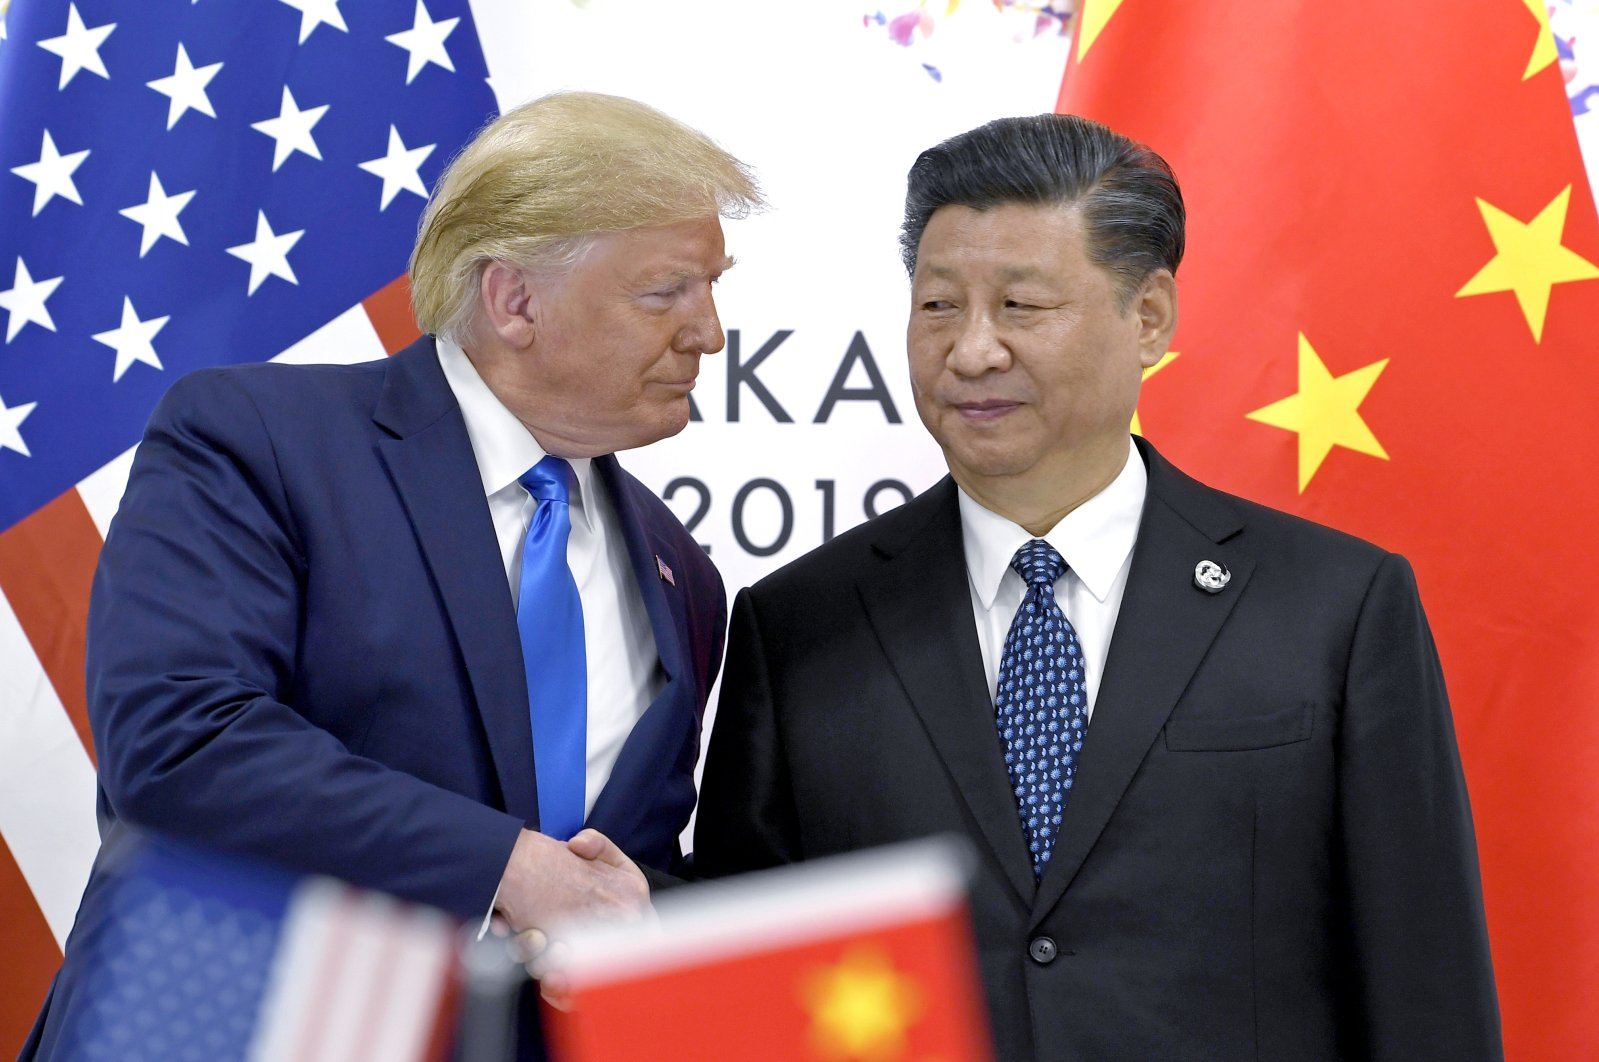 U.S. President Donald Trump (L) shakes hands with Chinese President Xi Jinping during a meeting on the sidelines of the G-20 summit in Osaka, western Japan, June 29, 2019. (AP Photo)